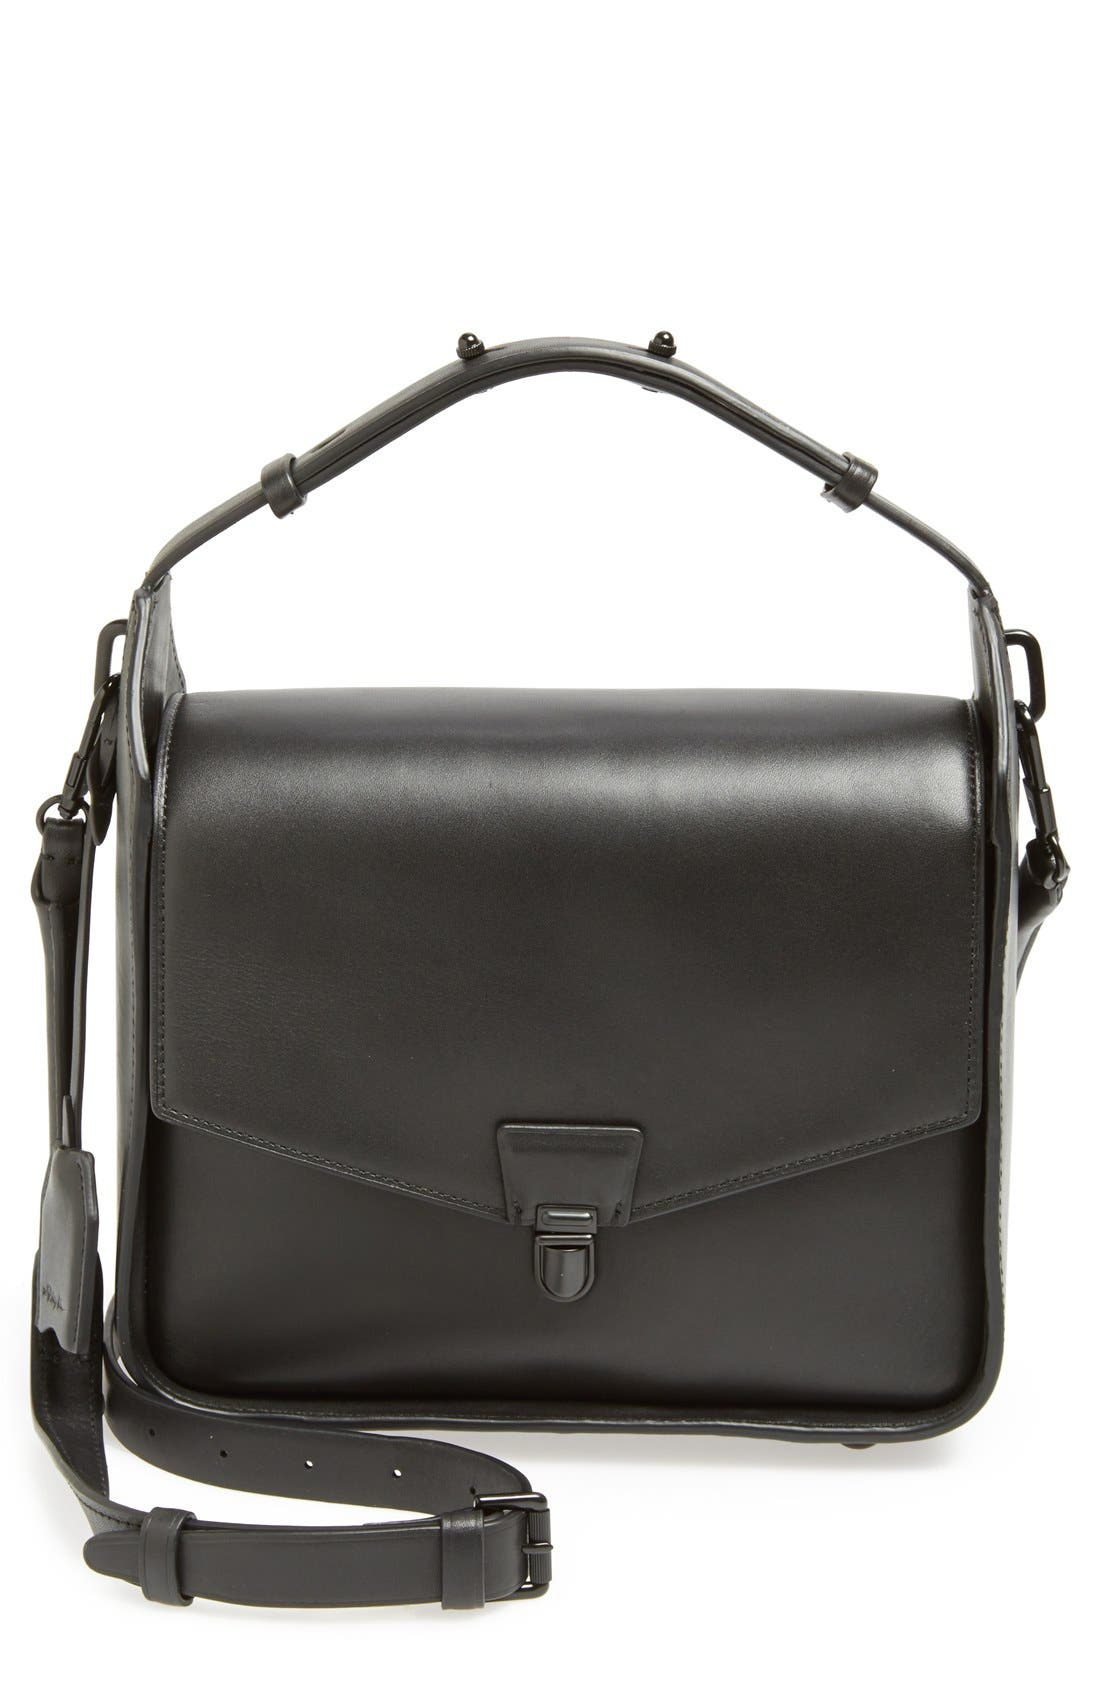 Alternate Image 1 Selected - 3.1 Phillip Lim 'Wednesday' Leather Shoulder Bag